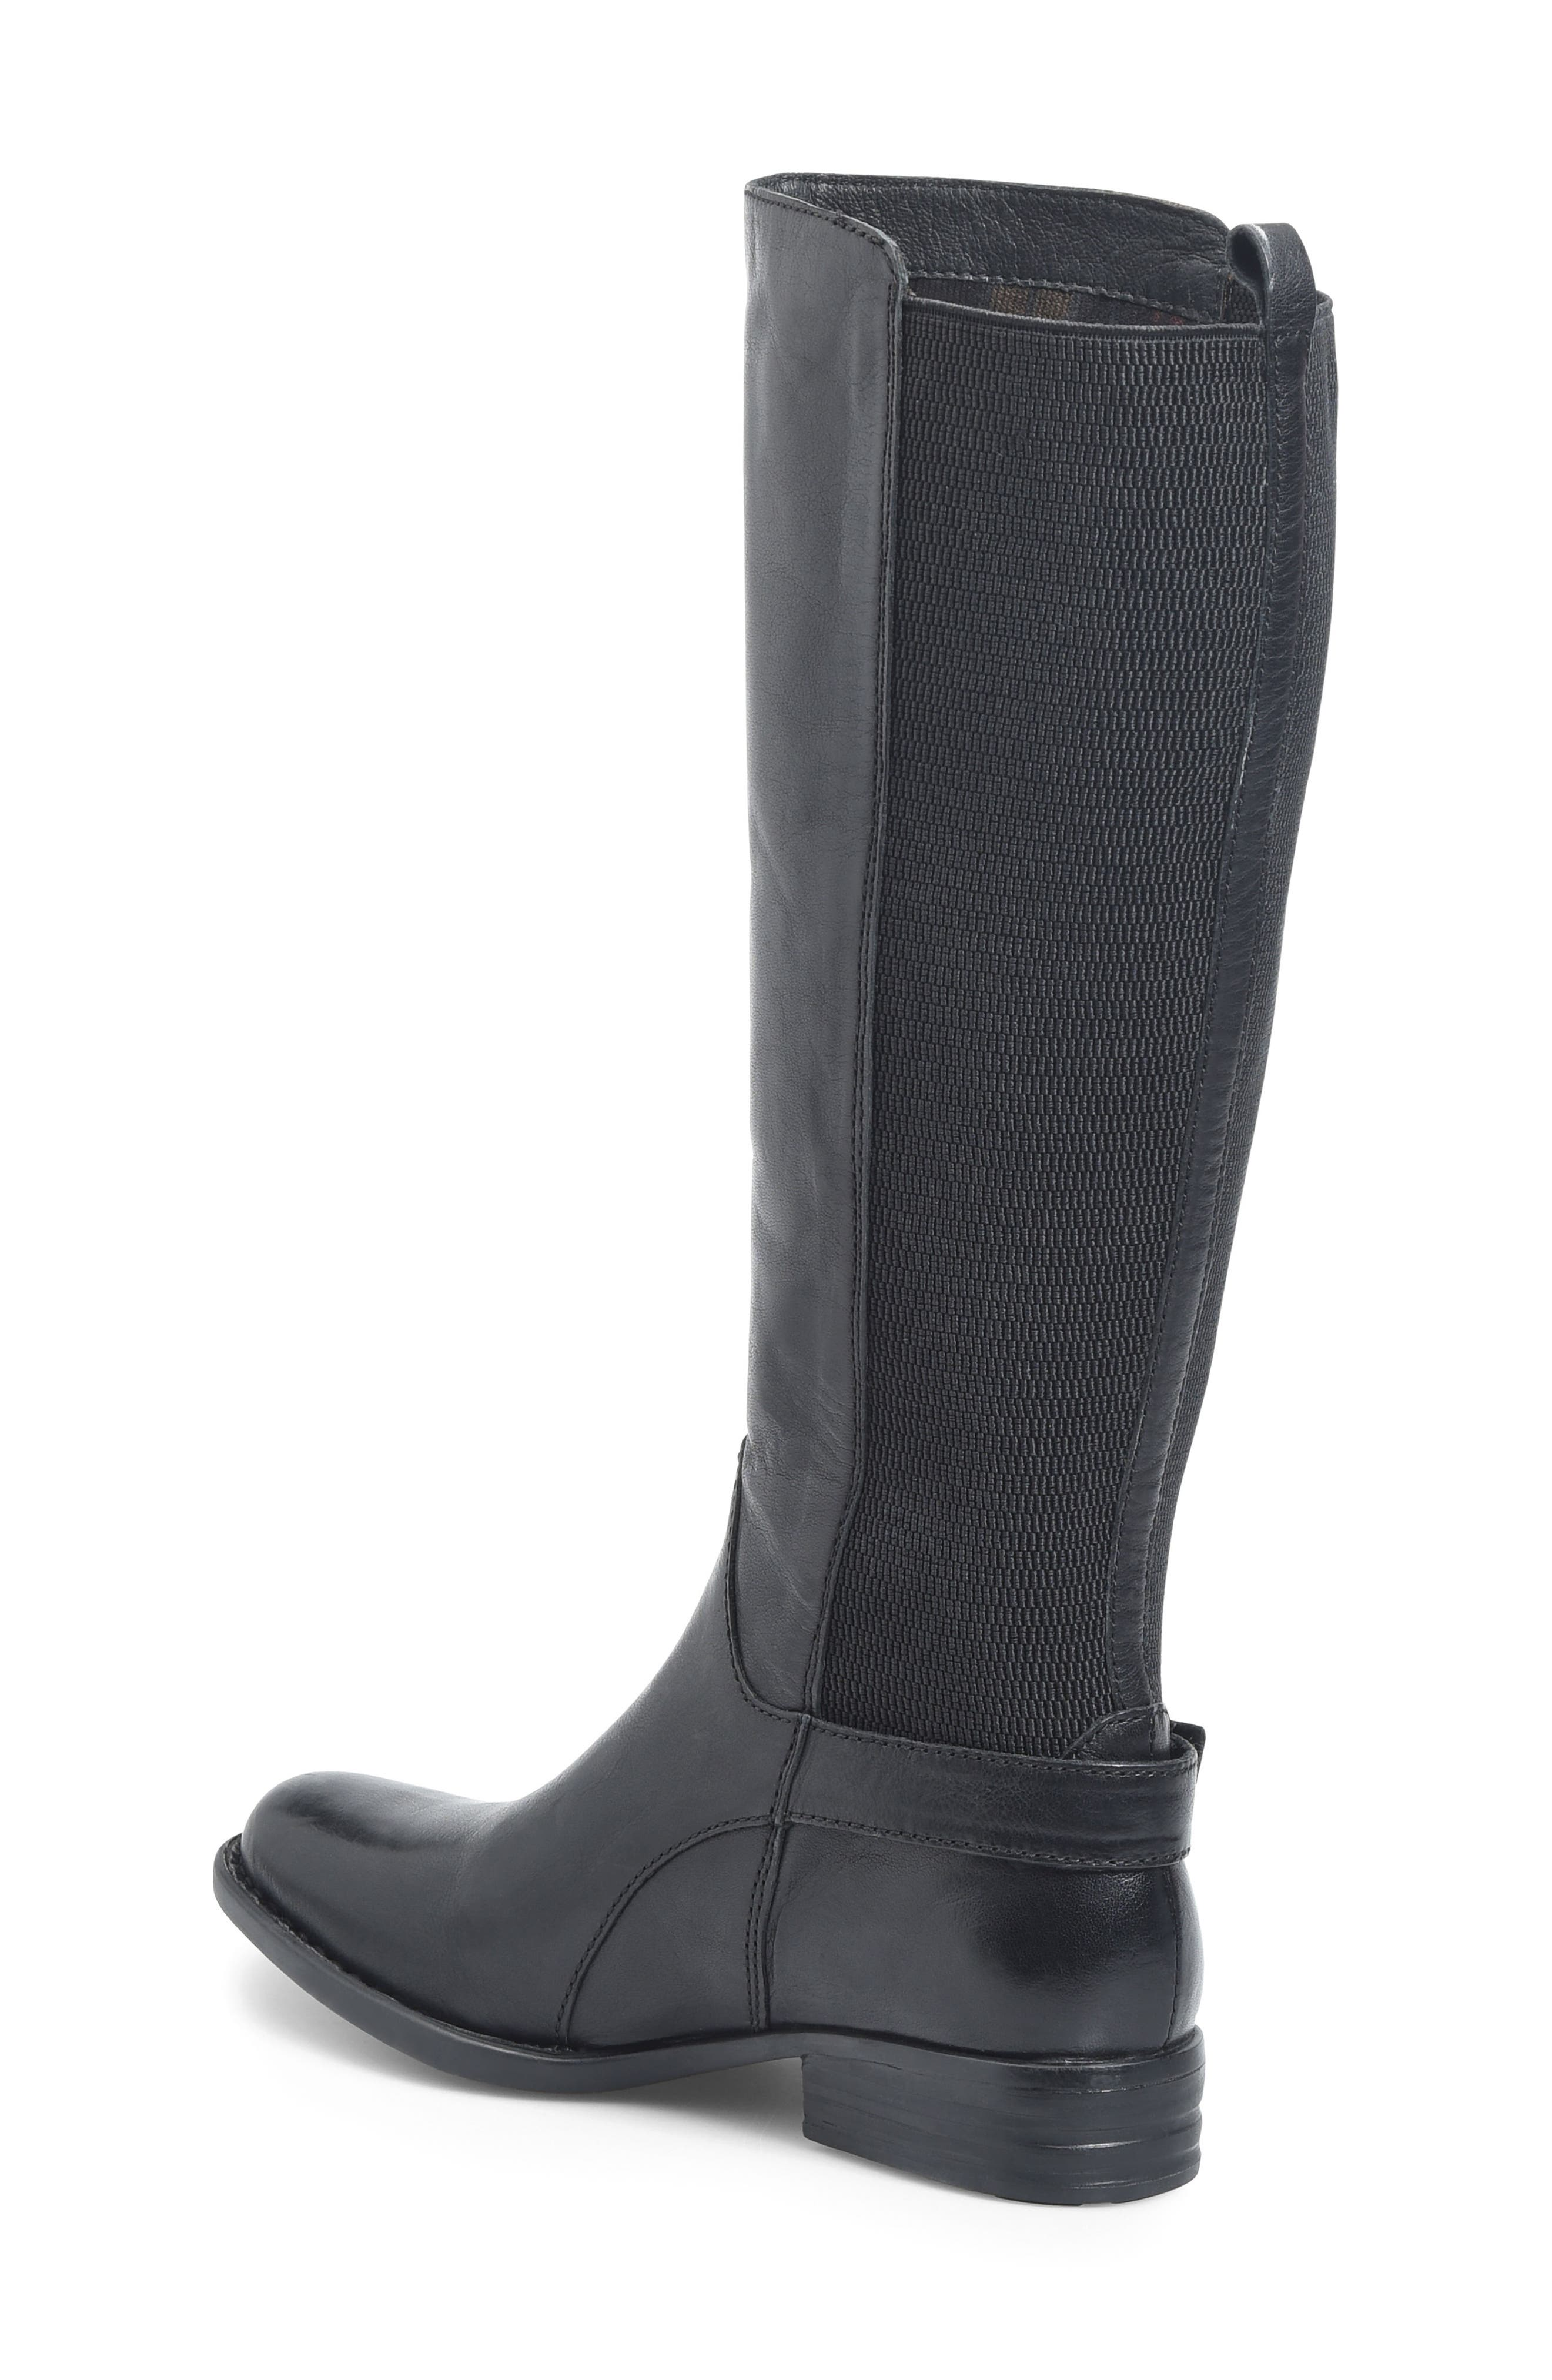 Campbell Knee High Elastic Back Boot,                             Alternate thumbnail 2, color,                             Black Leather